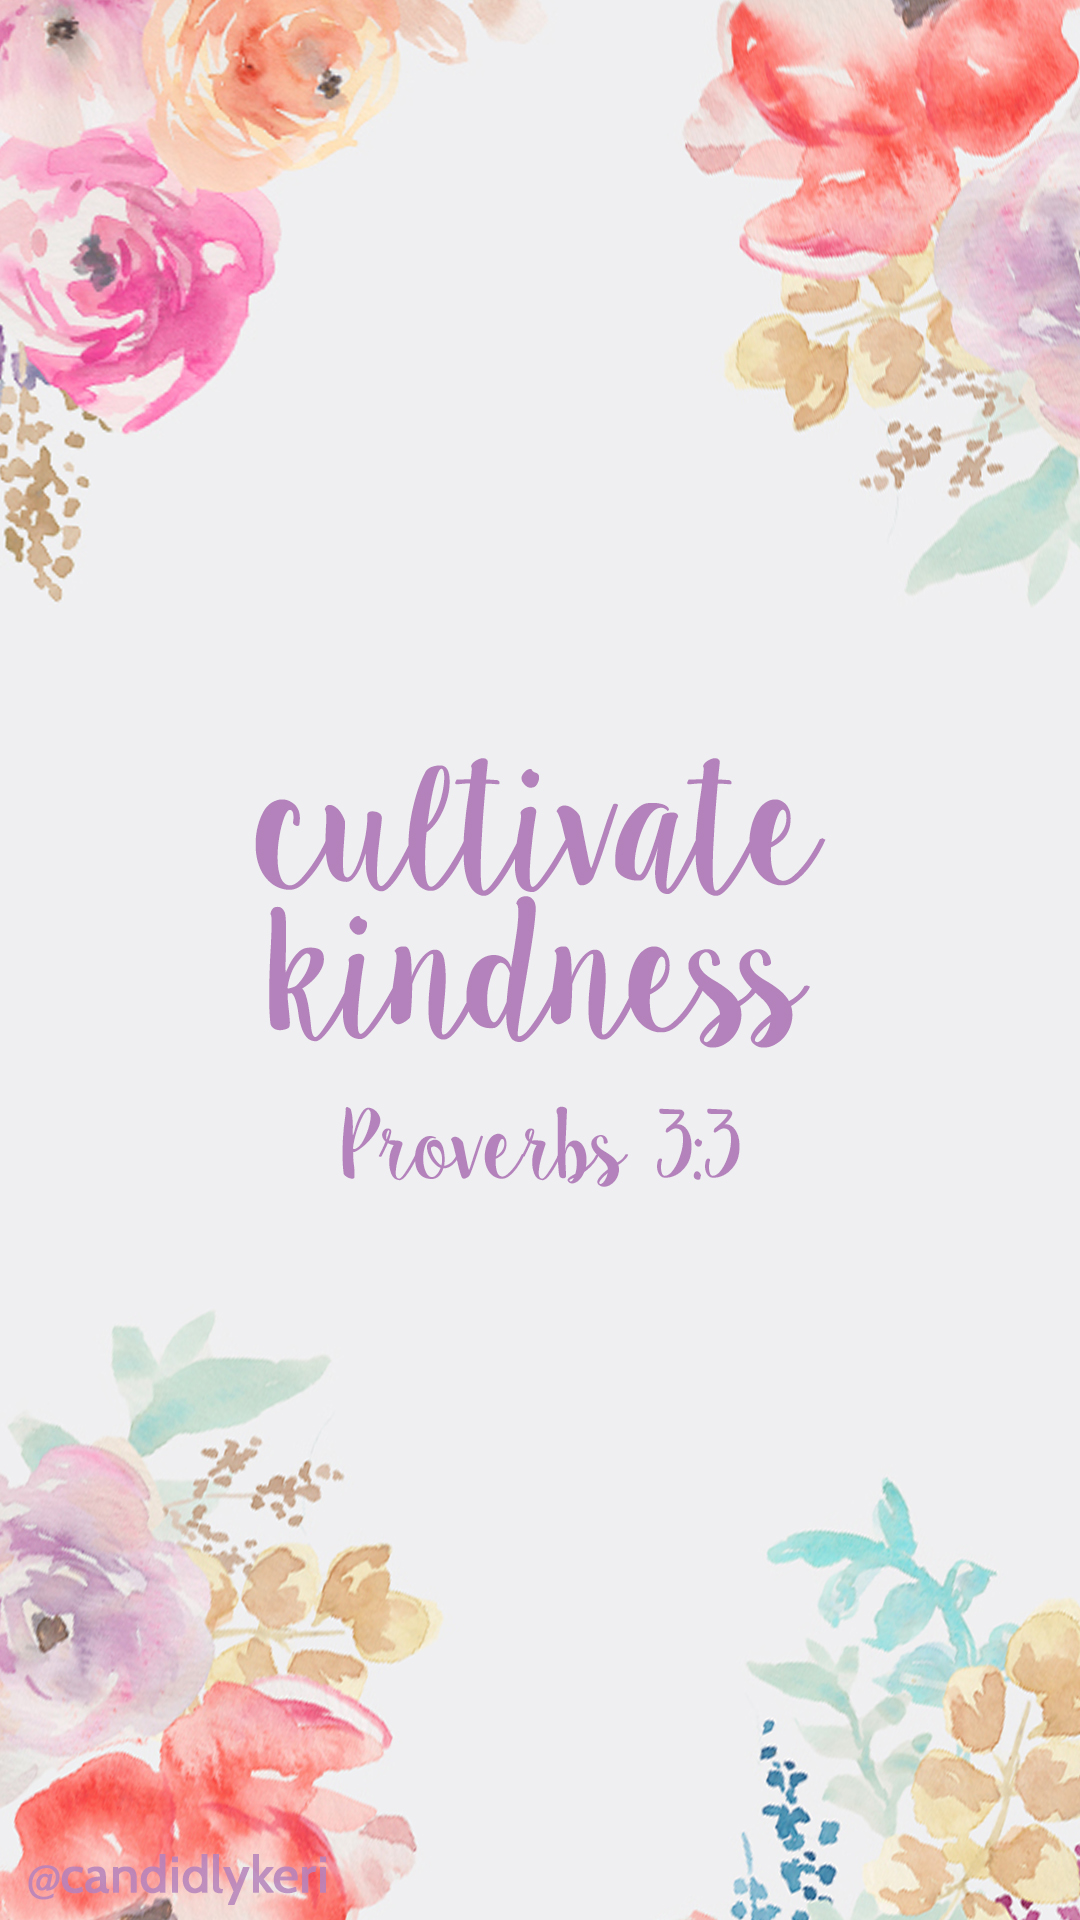 Cultivate-kindness-pray-proverbs-quote-bible-background-you-can-download-for-free-on-t-wallpaper-wpc9003882